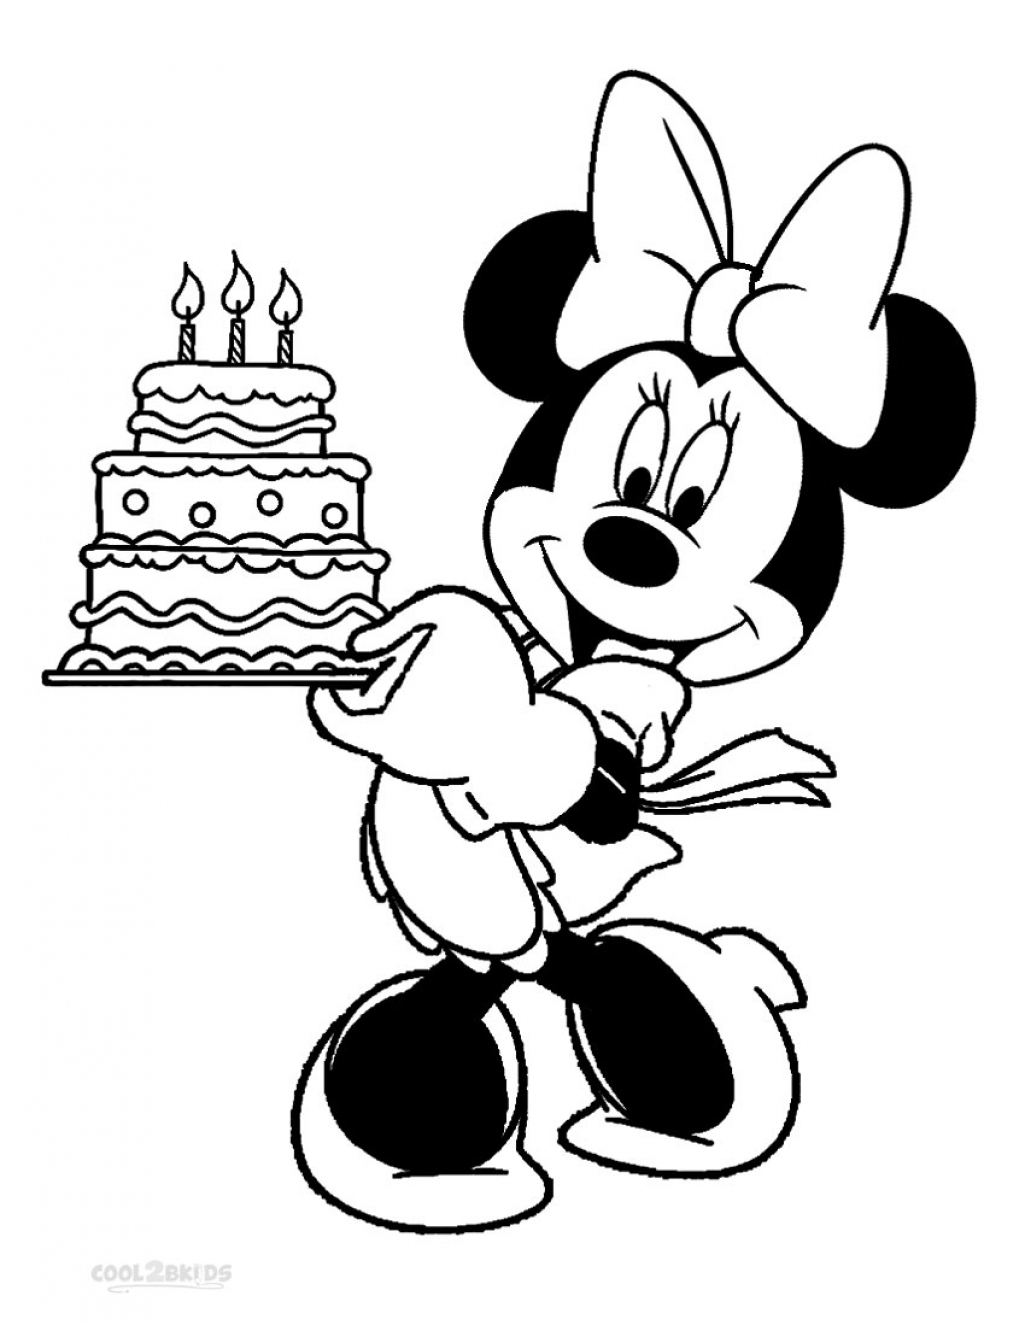 minnie mouse color sheets minnie mouse coloring pages food and drink disneyclipscom sheets minnie mouse color